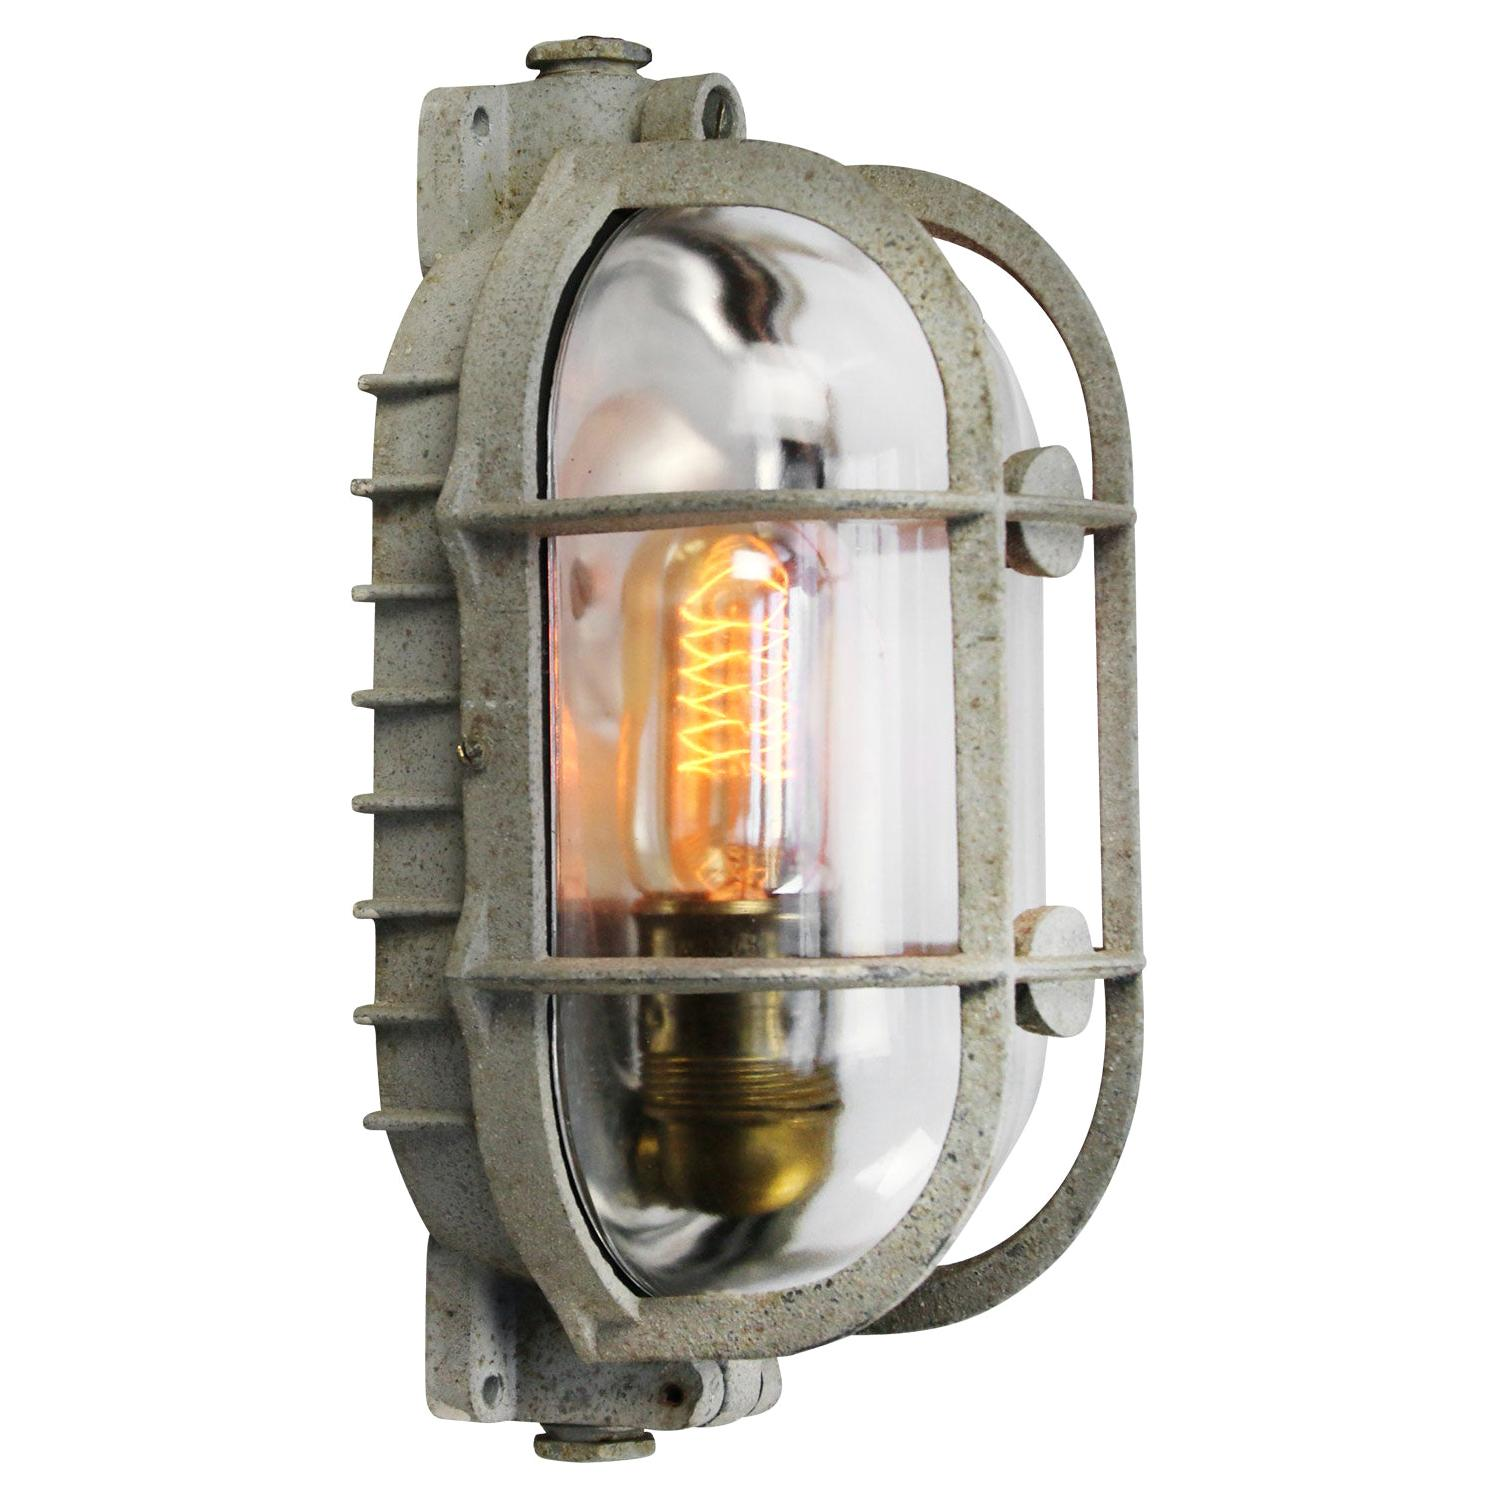 Gray Metal Vintage Industrial Clear Glass Wall Lamp Scone